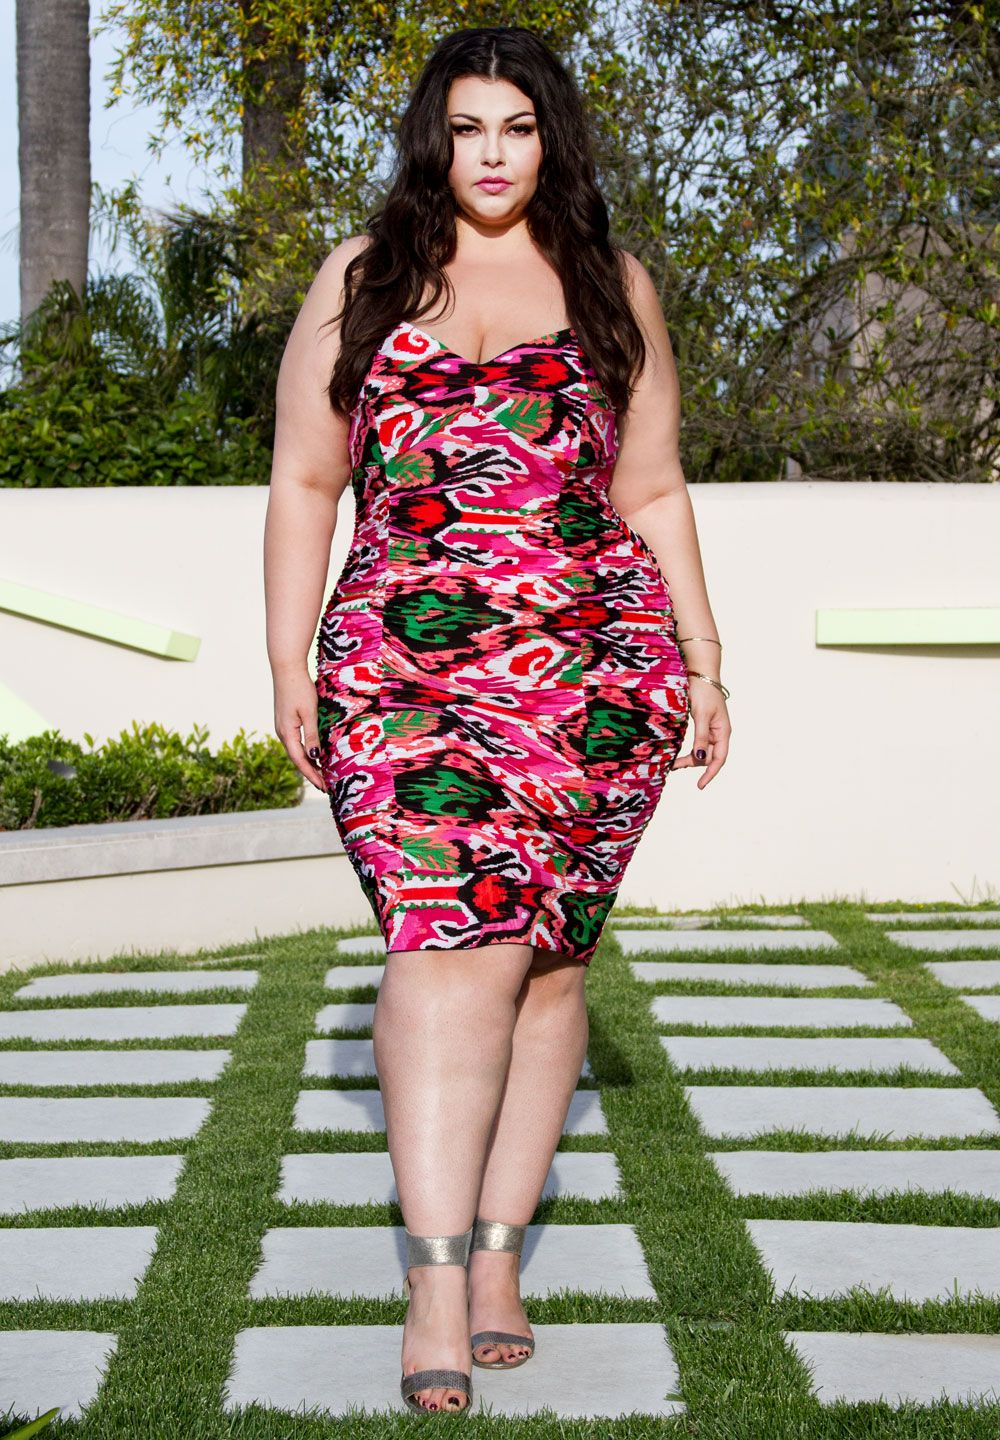 Tamara Ruched Dress In Multi Plus Size Special Occasion